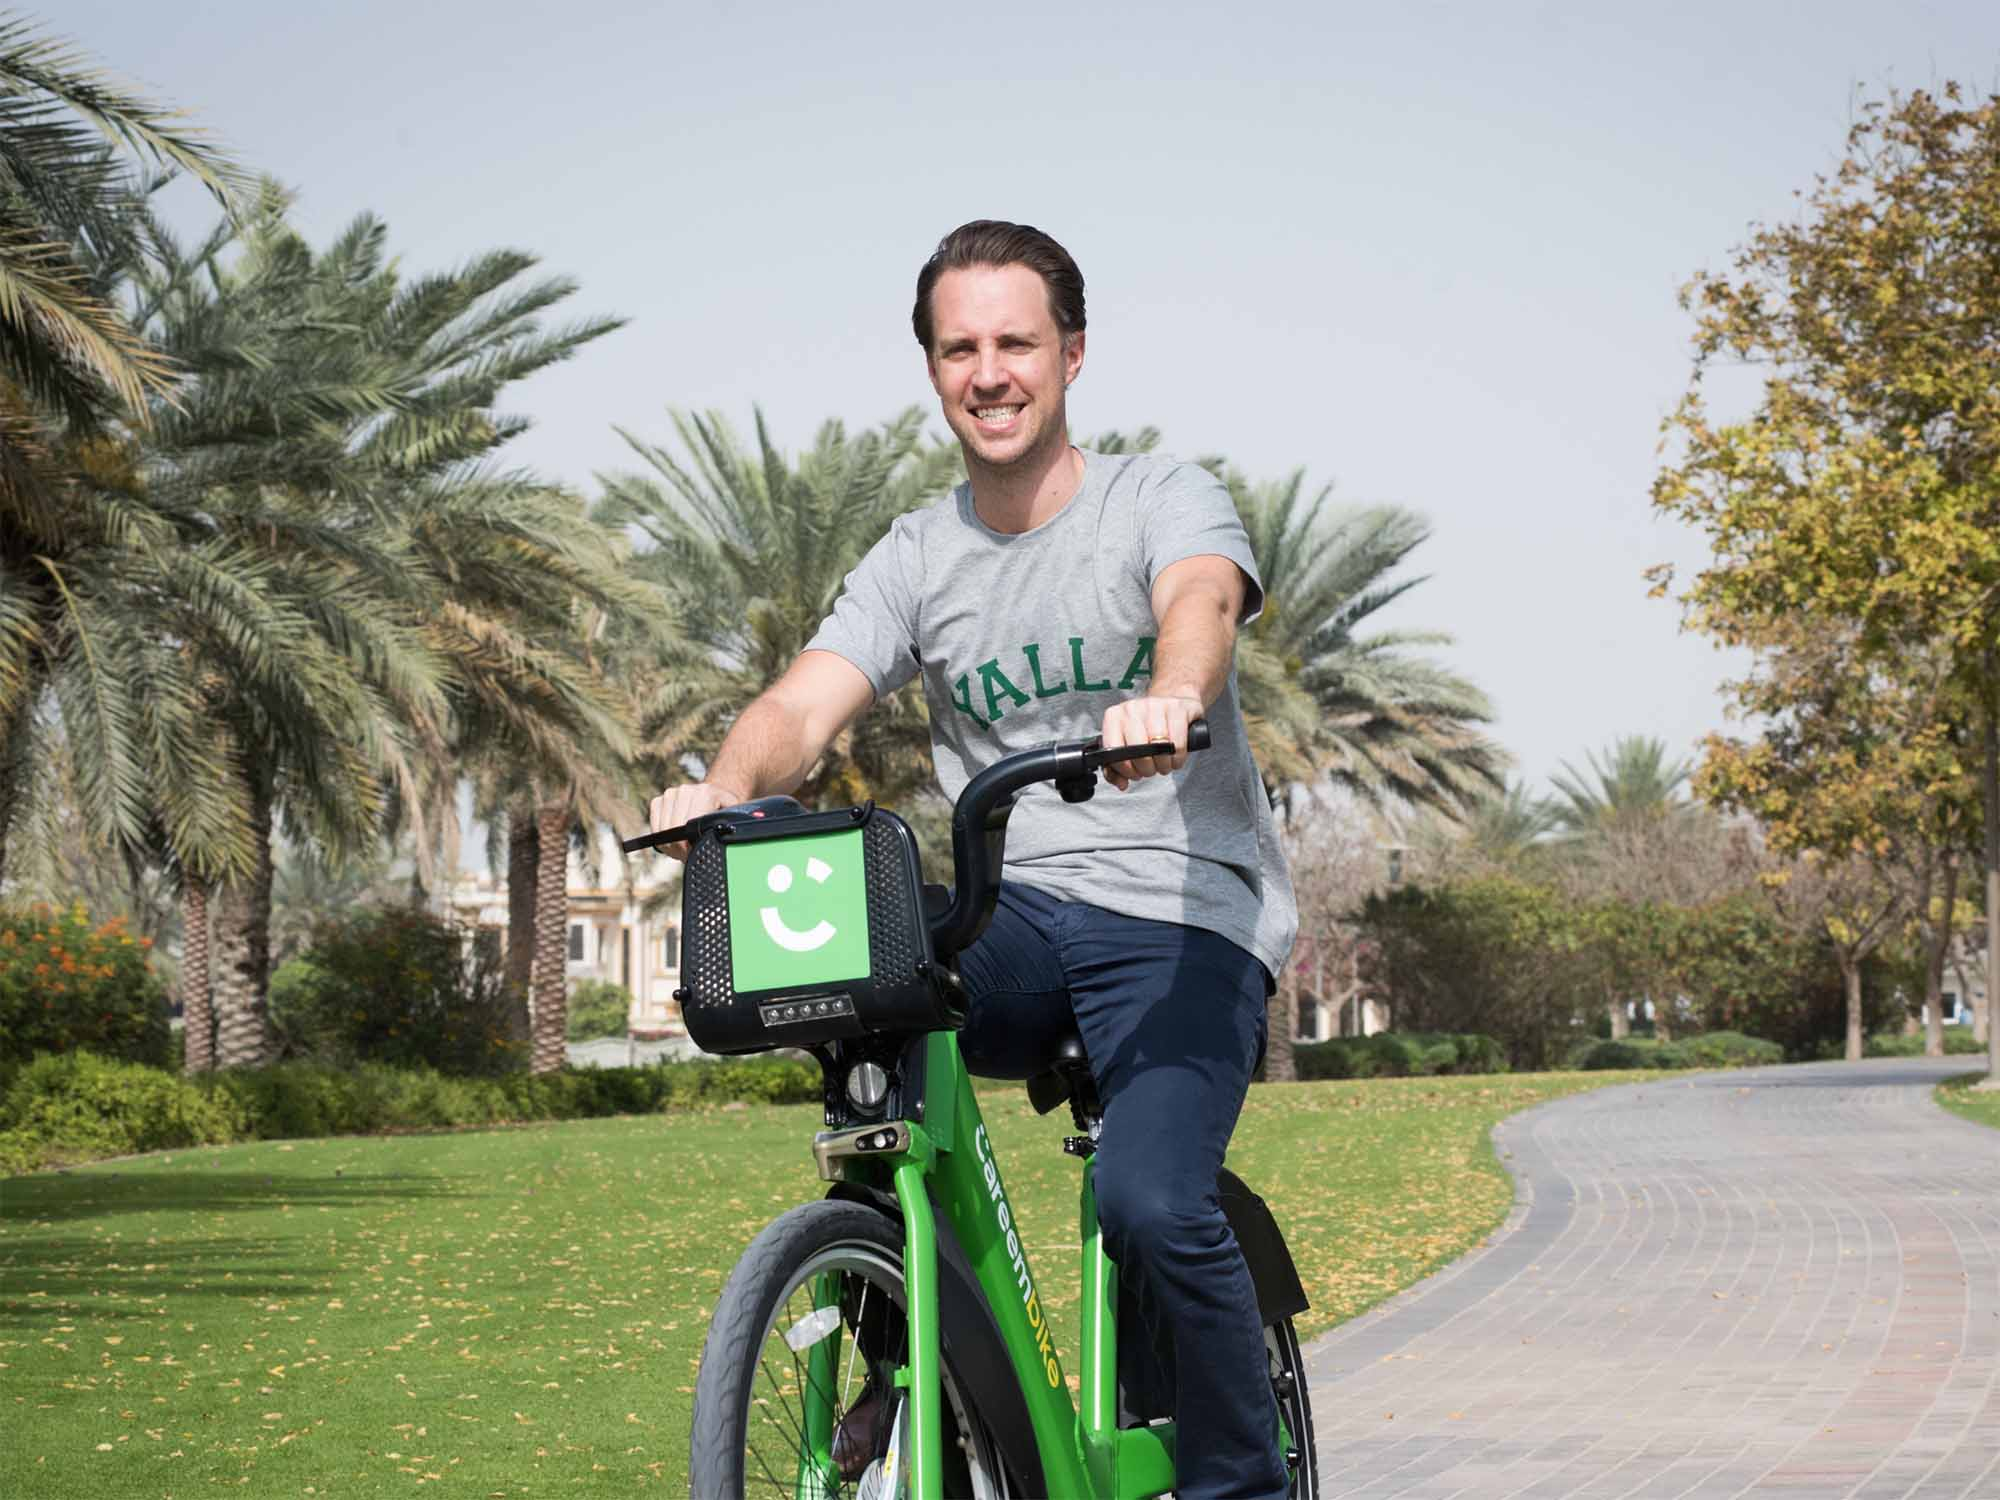 Careem enters micro-mobility space with acquisition of Cyacle